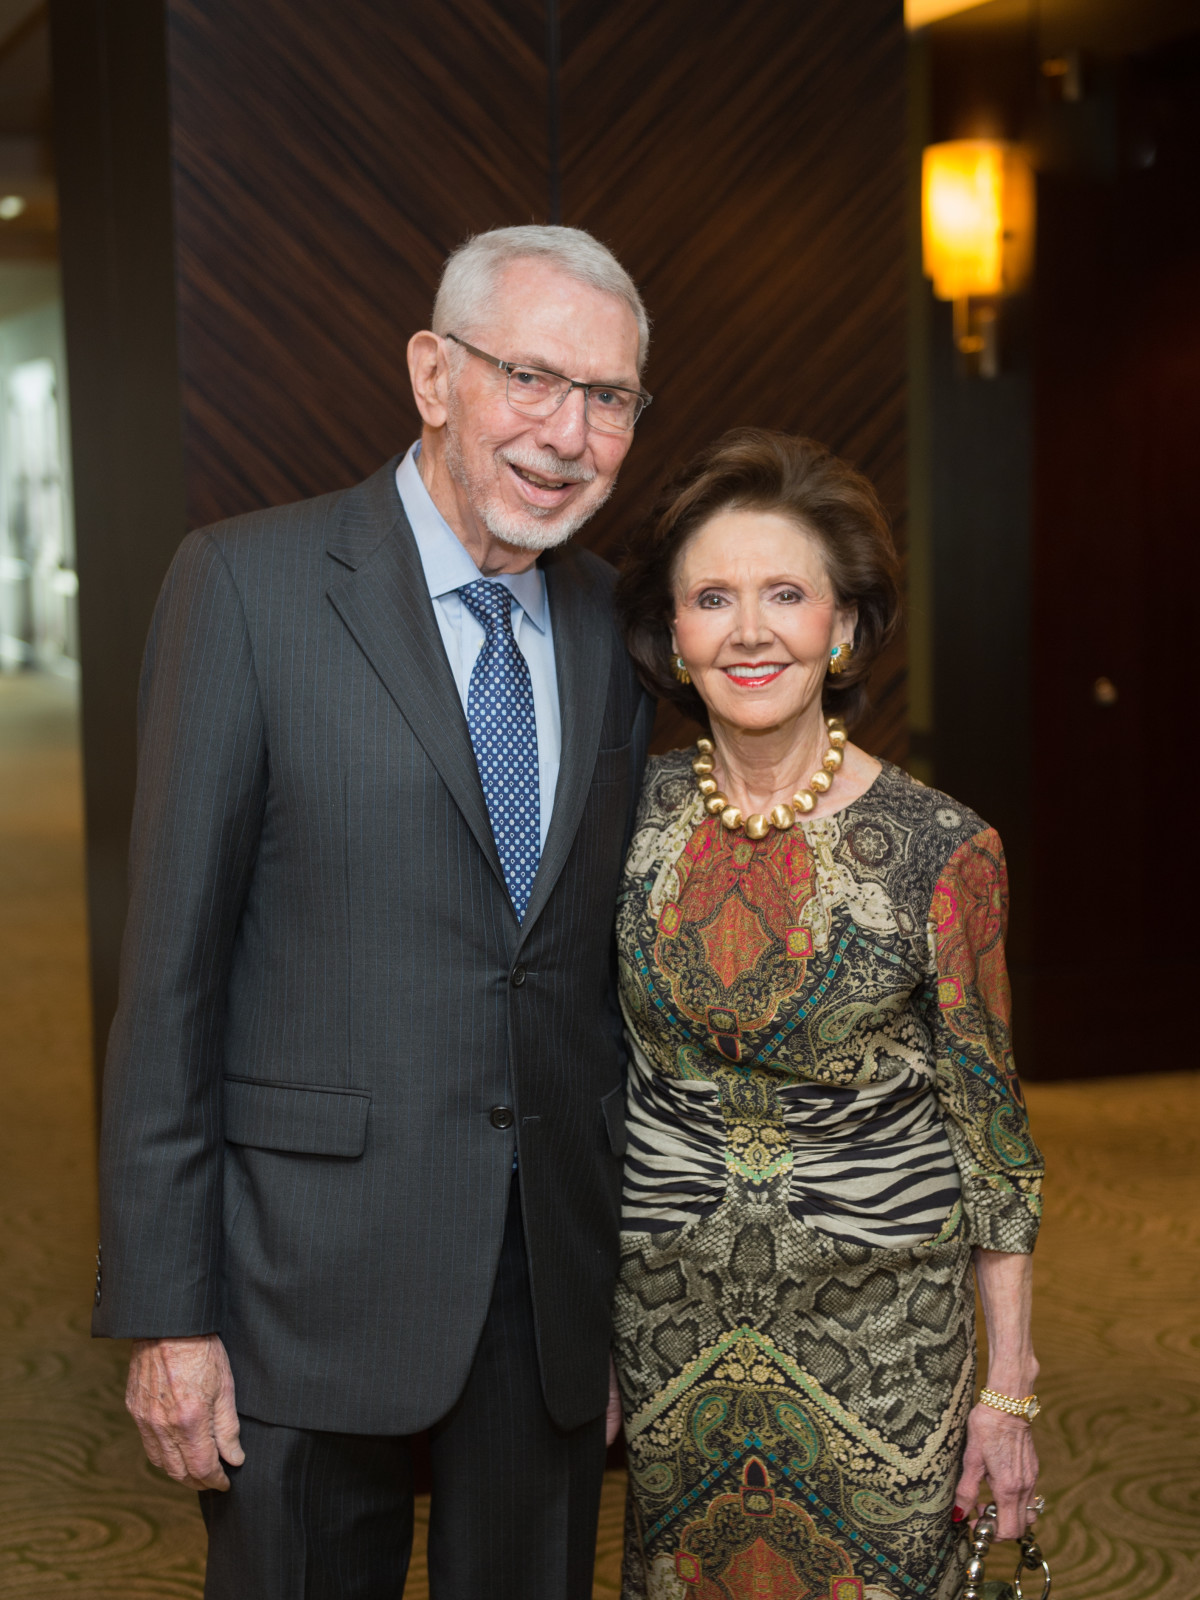 News, Shelby, Holocaust museum luncheon, Nov. 2015, Melvyn Wolff, Cyvia Wolff